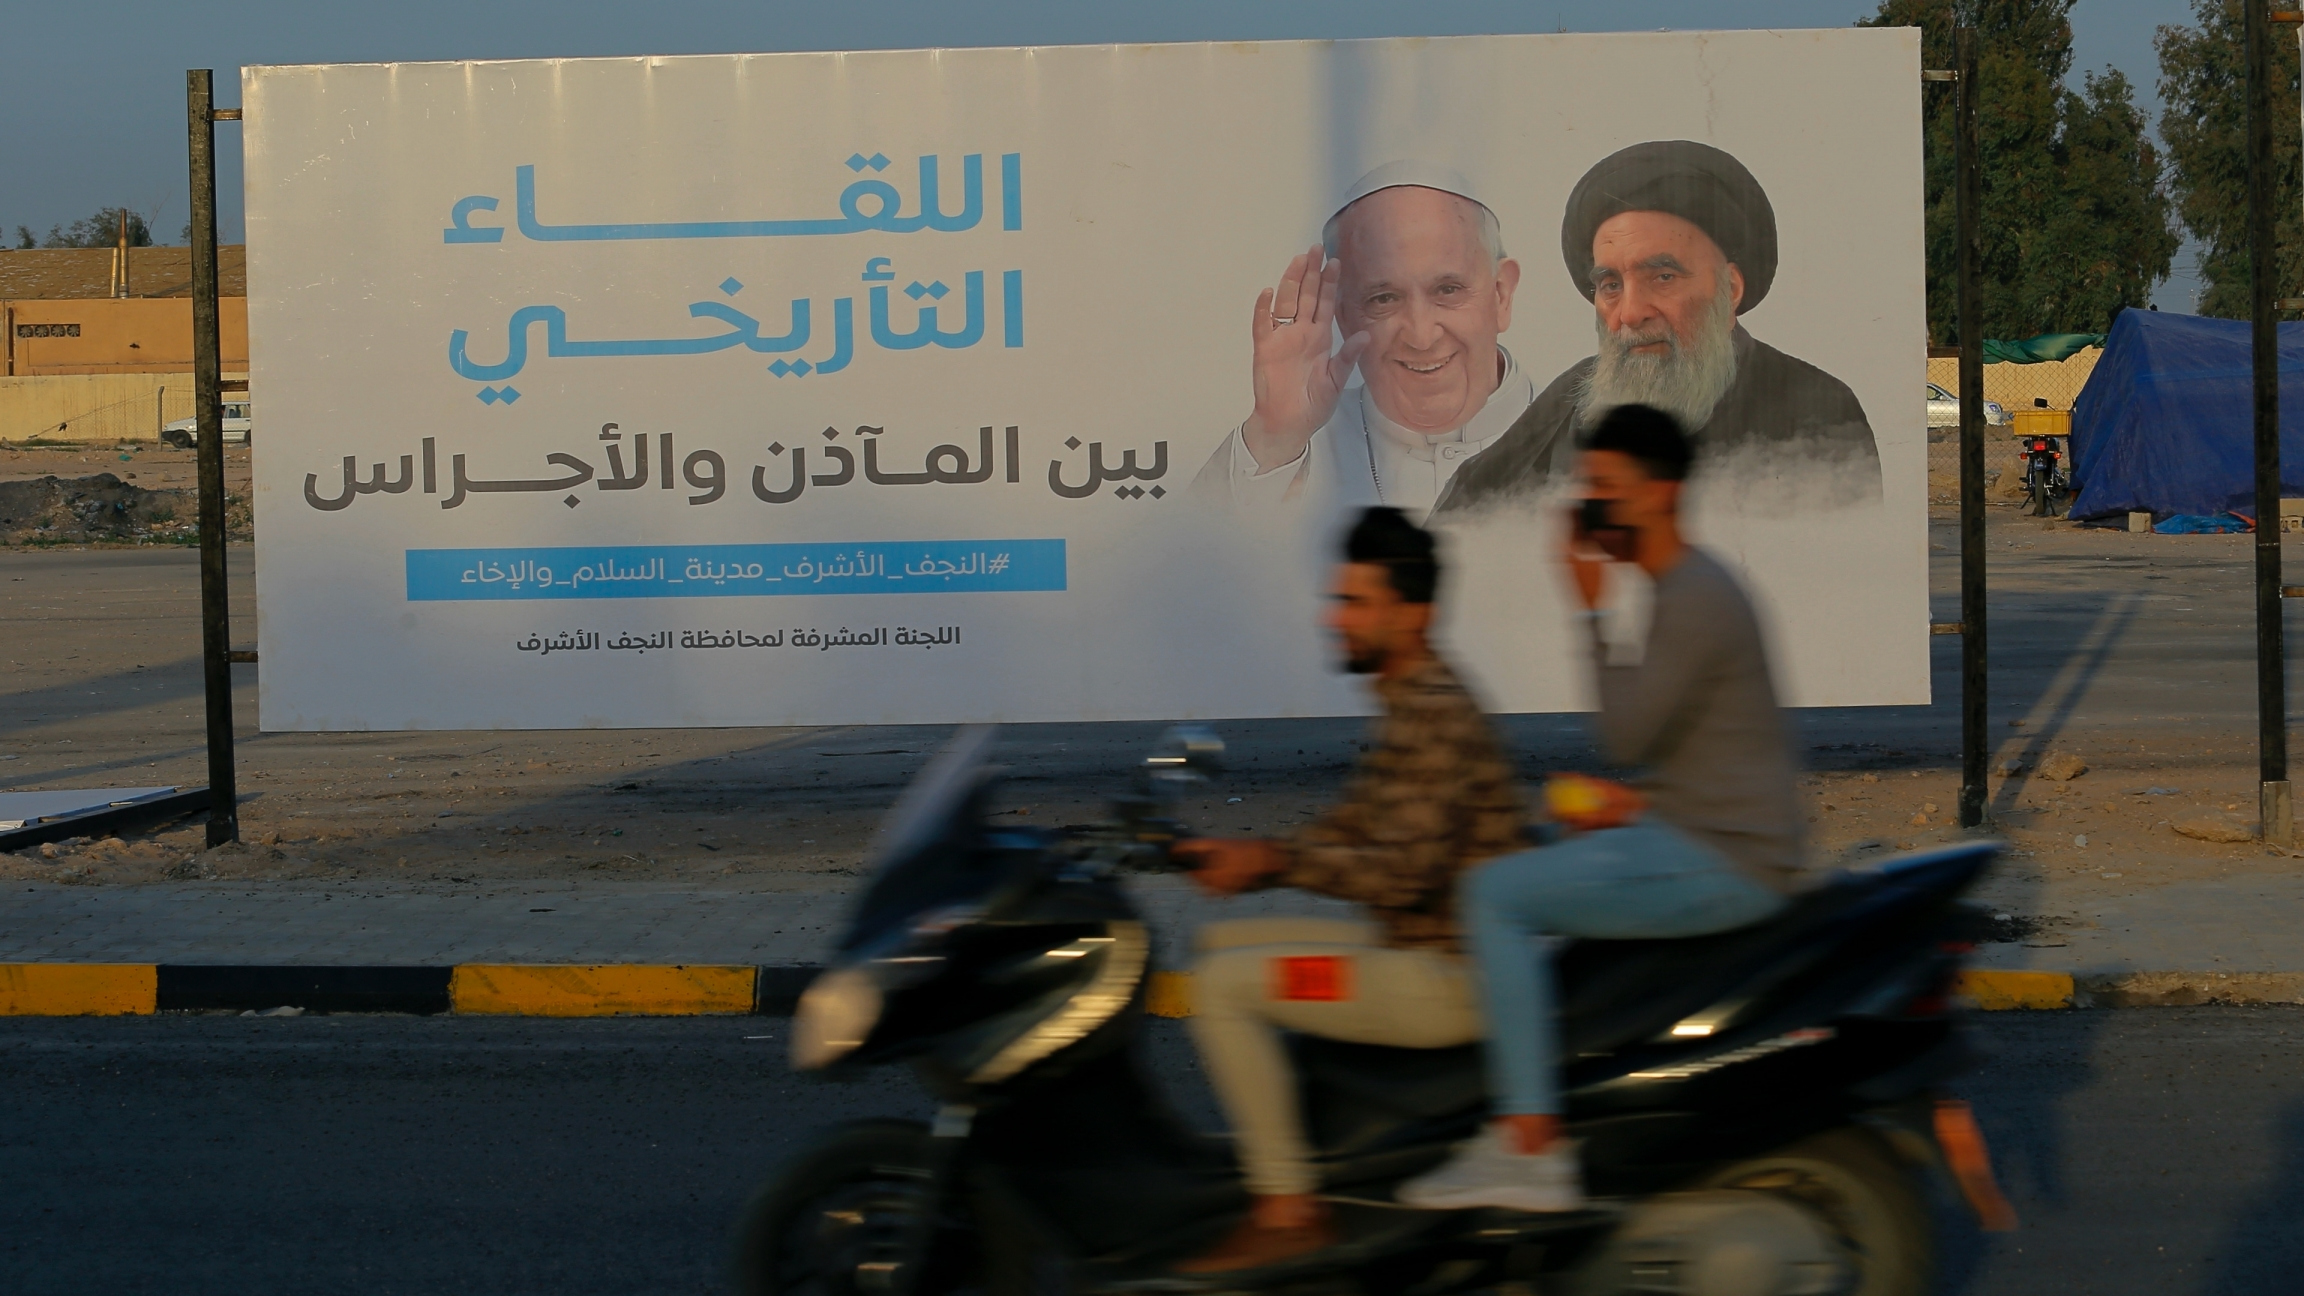 Iraqis put up a poster announcing the upcoming visit of Pope Francis and a meeting with a revered Shiite Muslim leader, Grand Ayatollah Ali al-Sistani, right, in Najaf, Iraq, March 4, 2021.